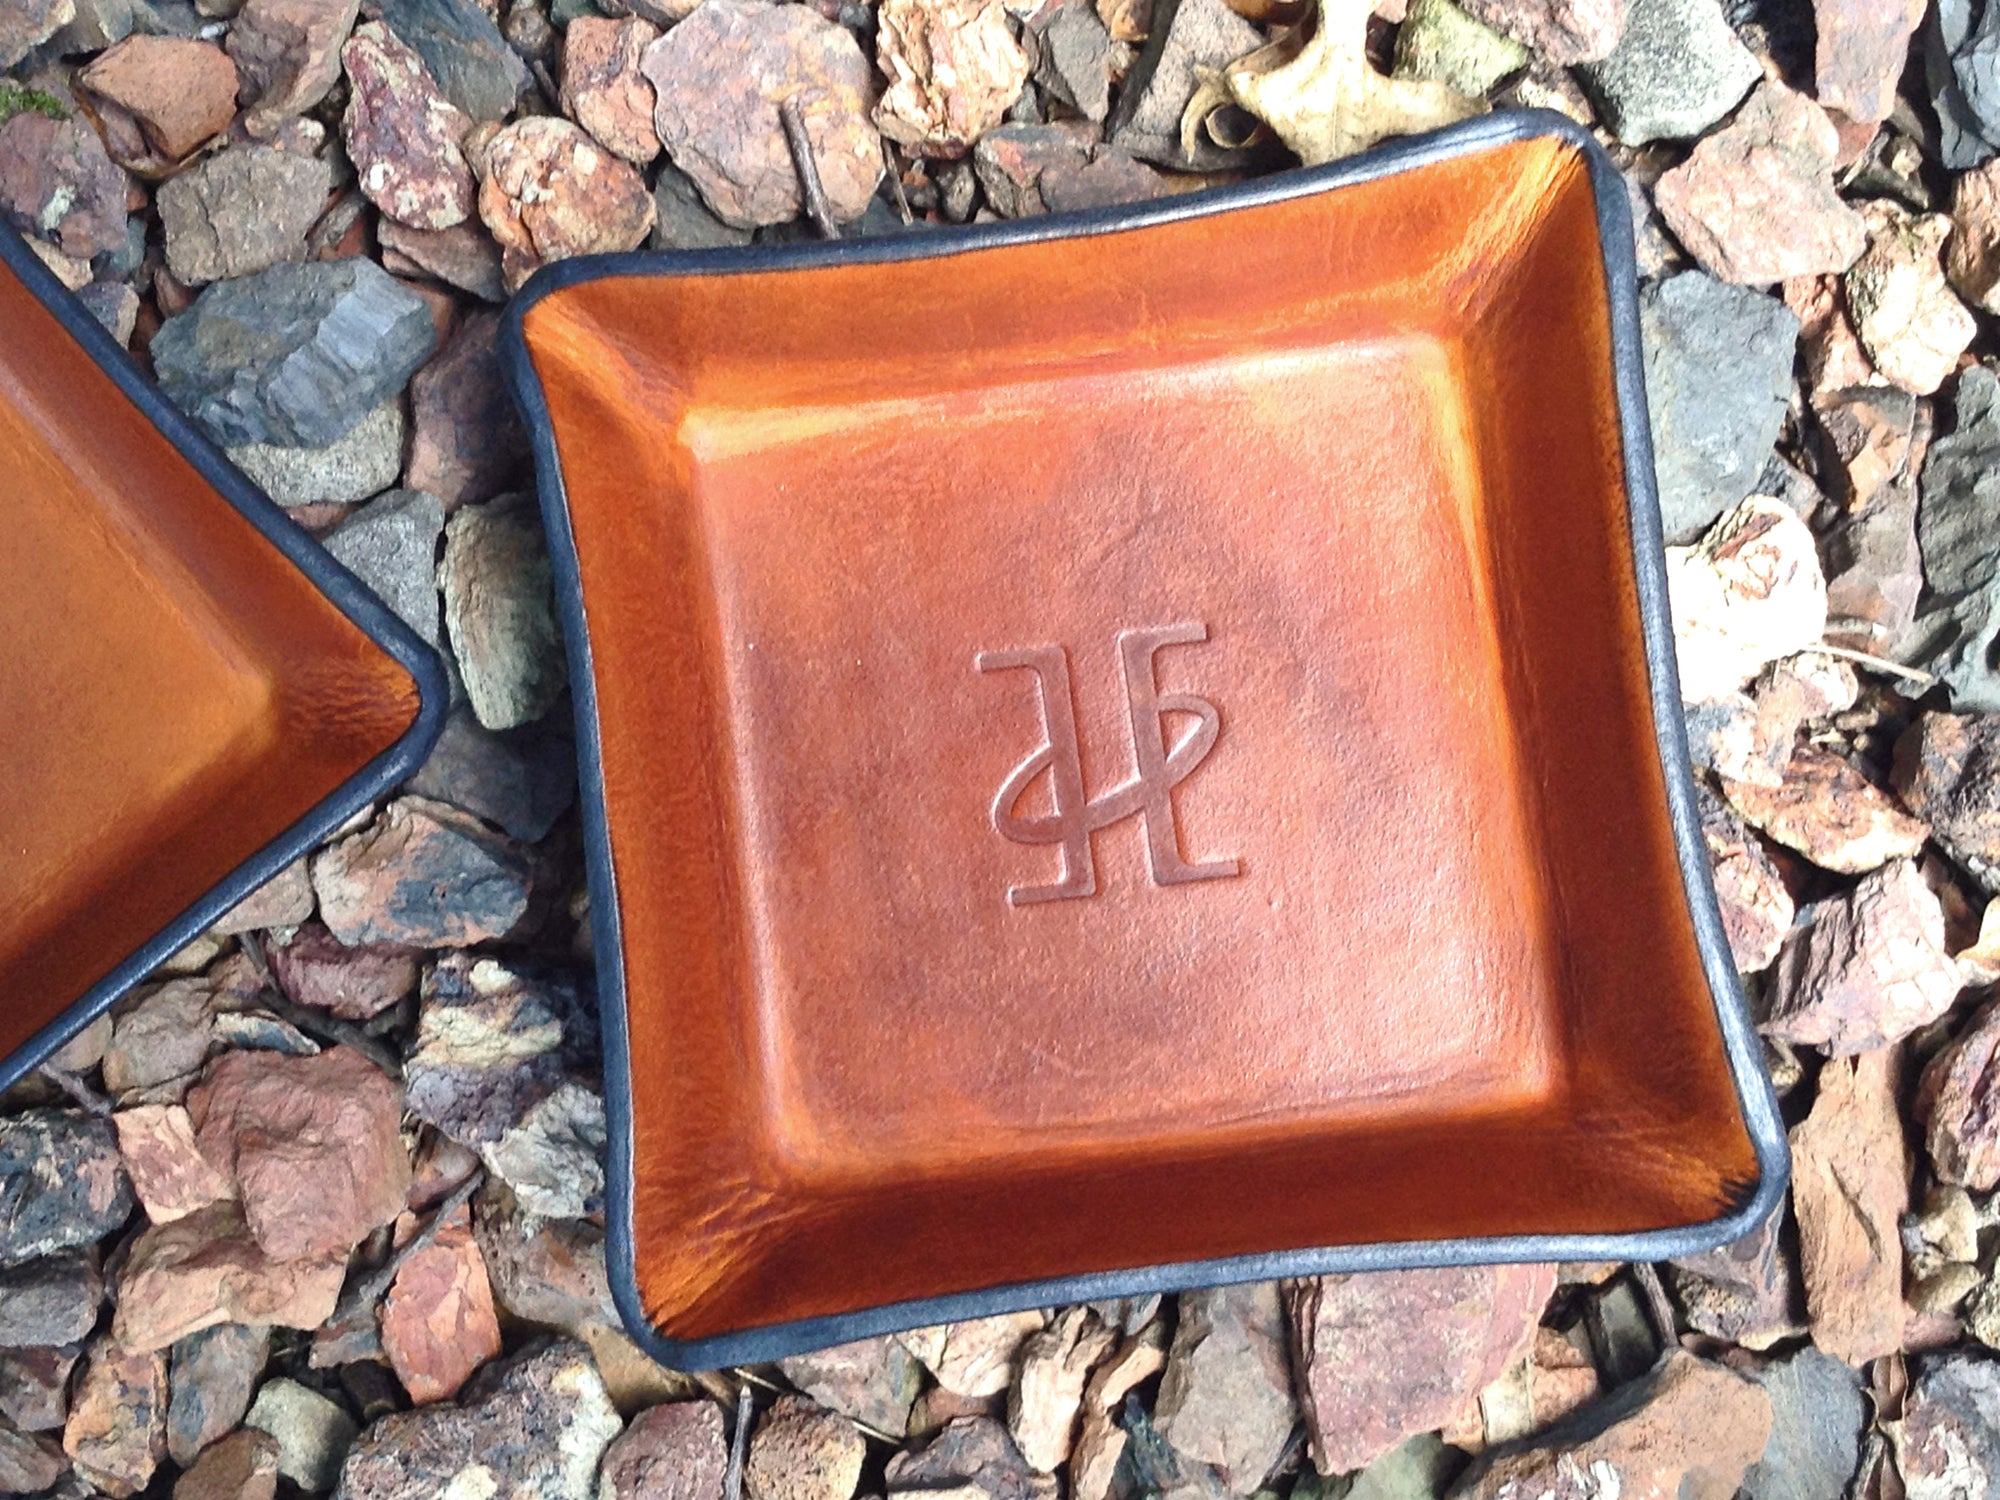 Twin Saints Leather Corporate Gifts Logos